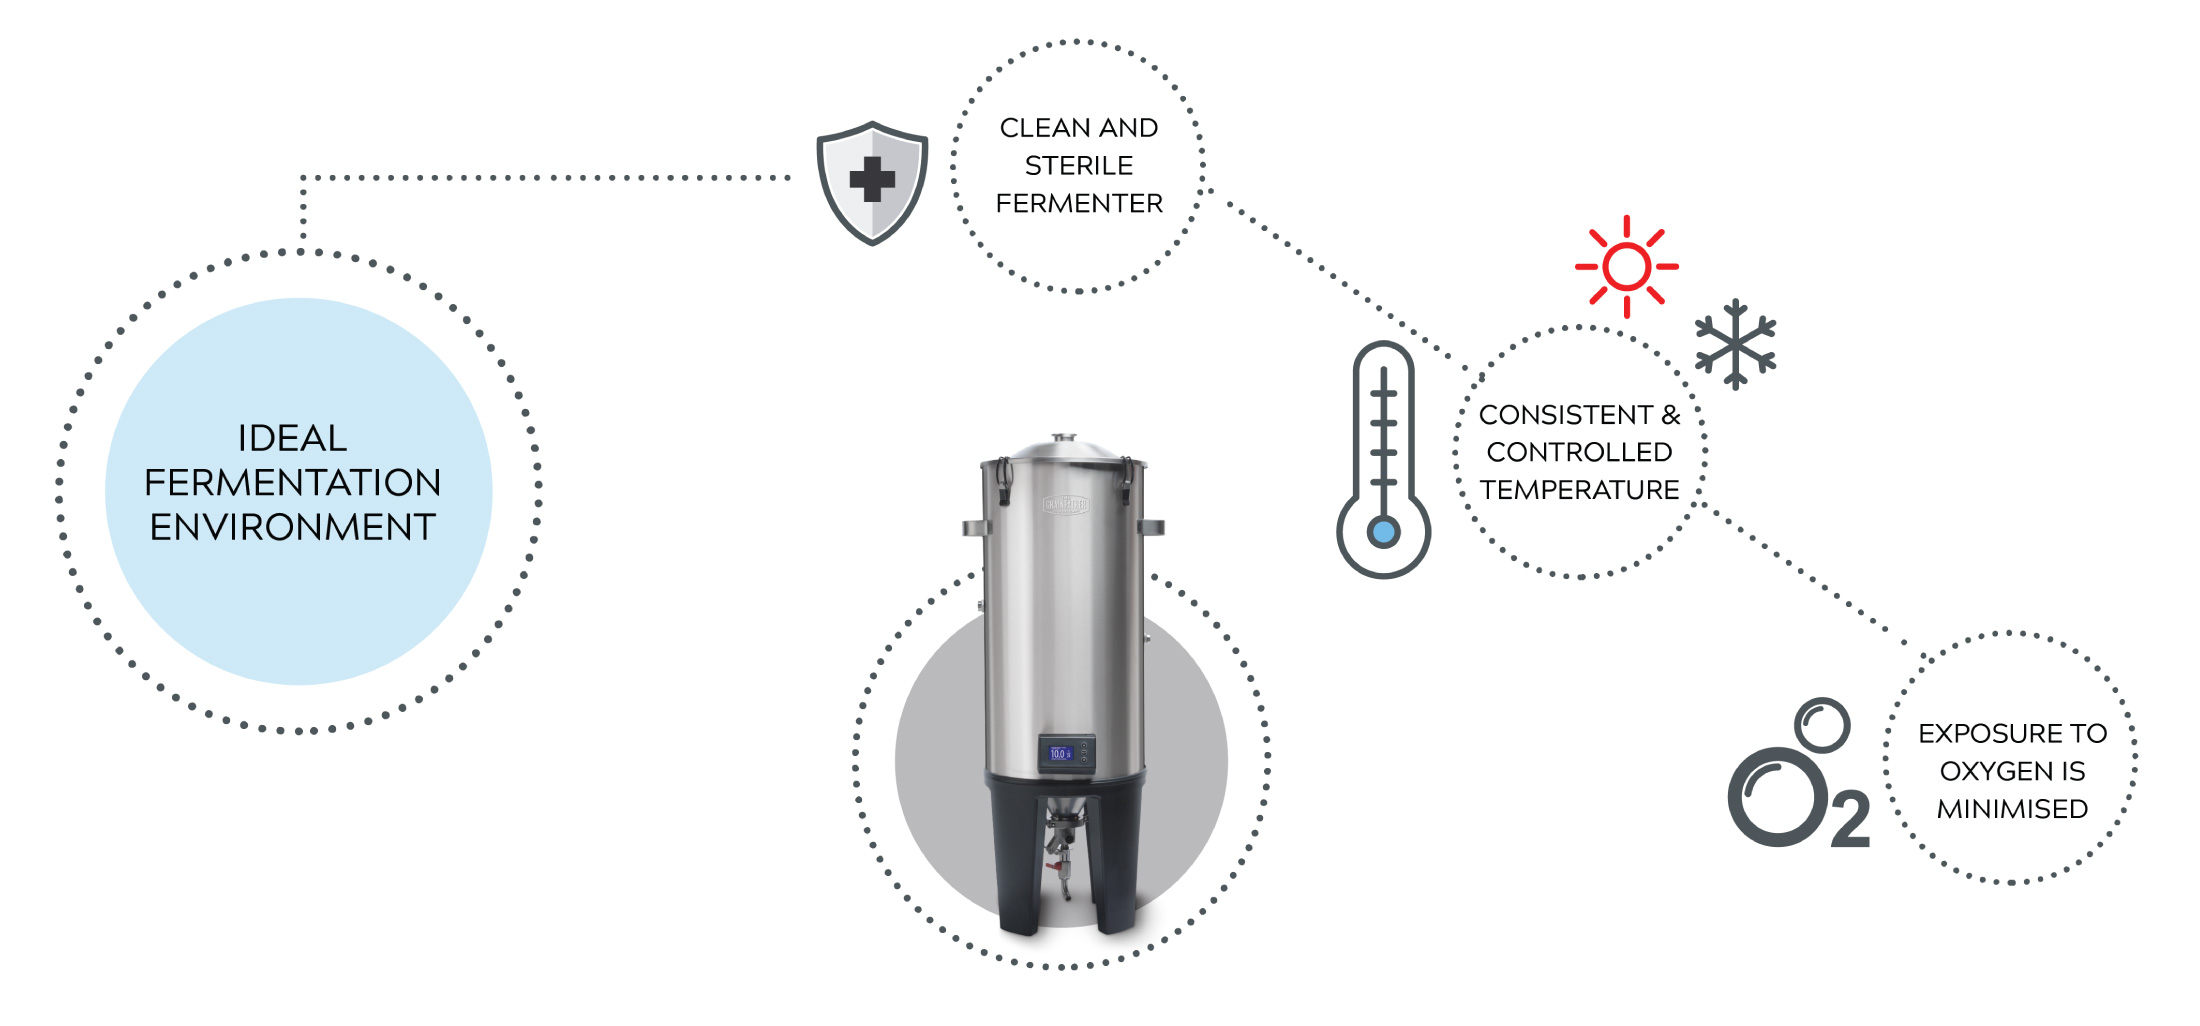 Image to show the Grainfather Conical Fermenter